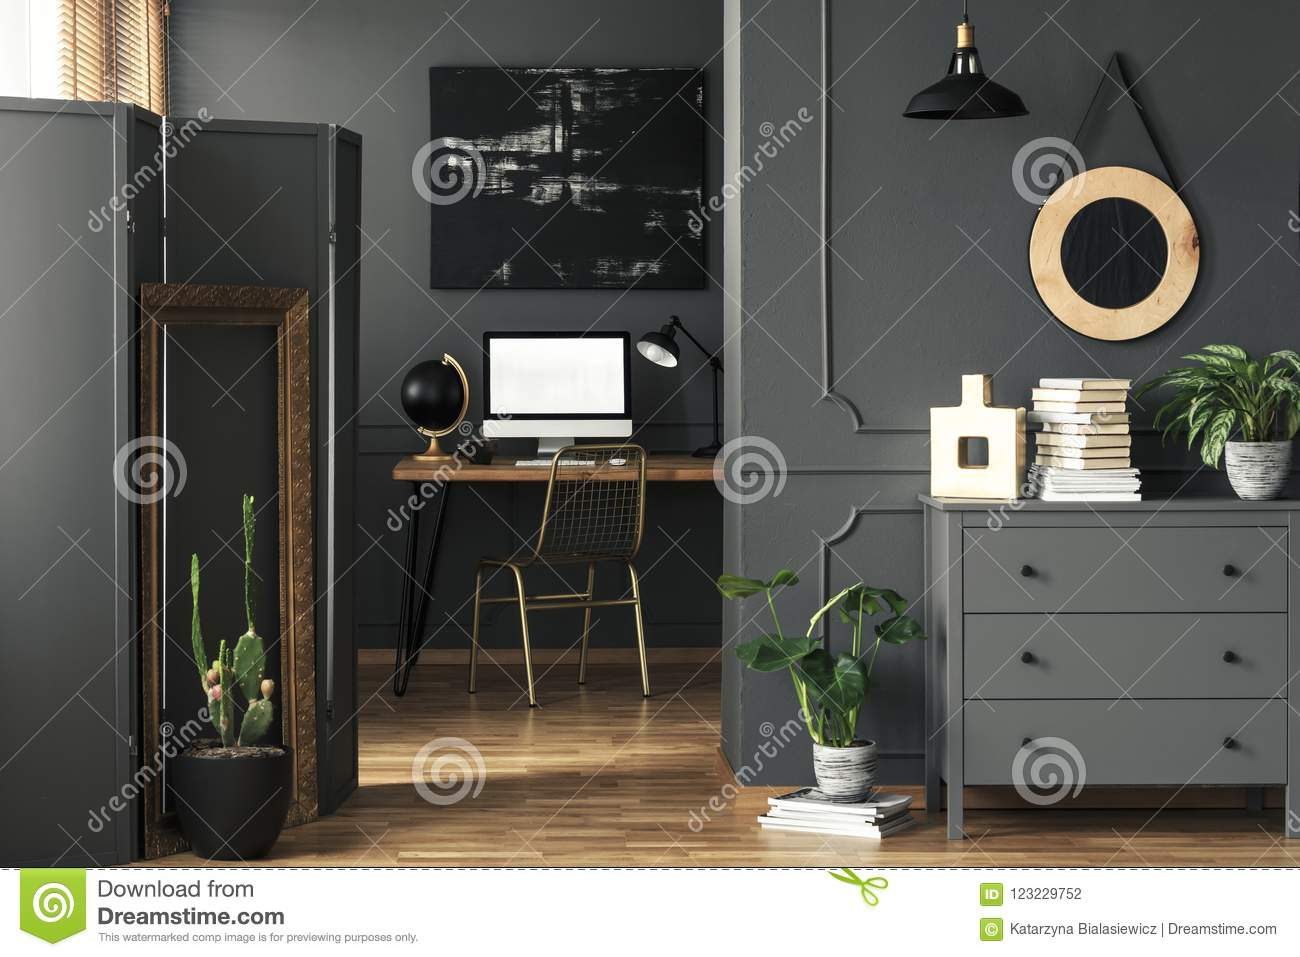 Wooden cupboard with decor, fresh plant and books standing in the real photo of open space living room interior with wainscoting